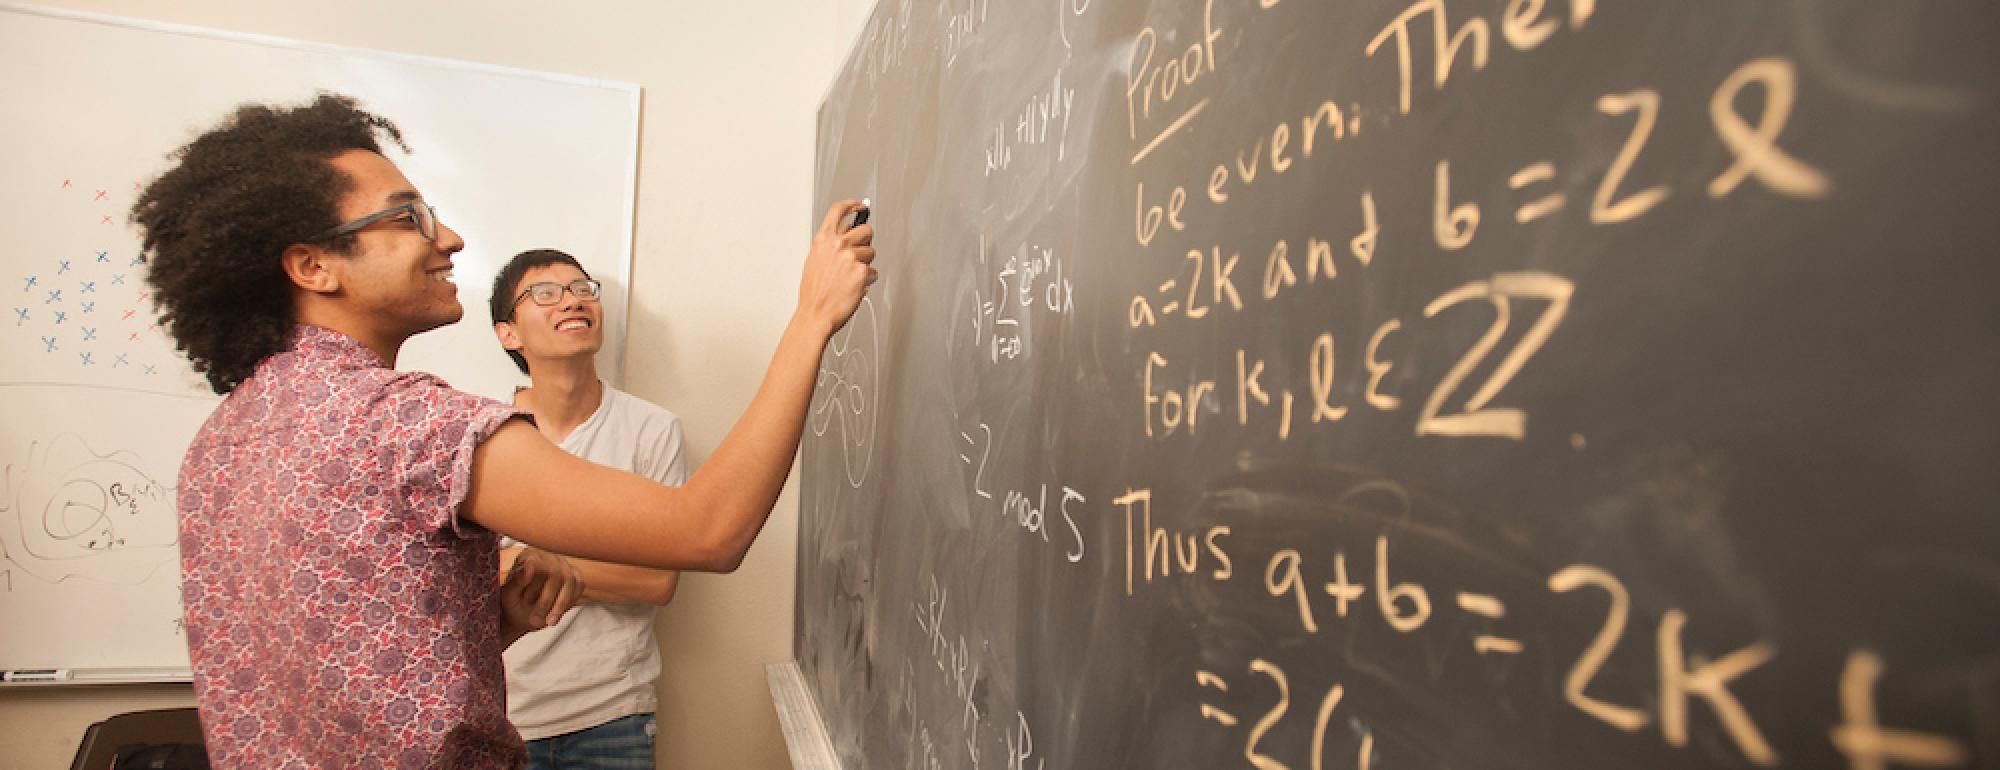 A student does equations at a blackboard.